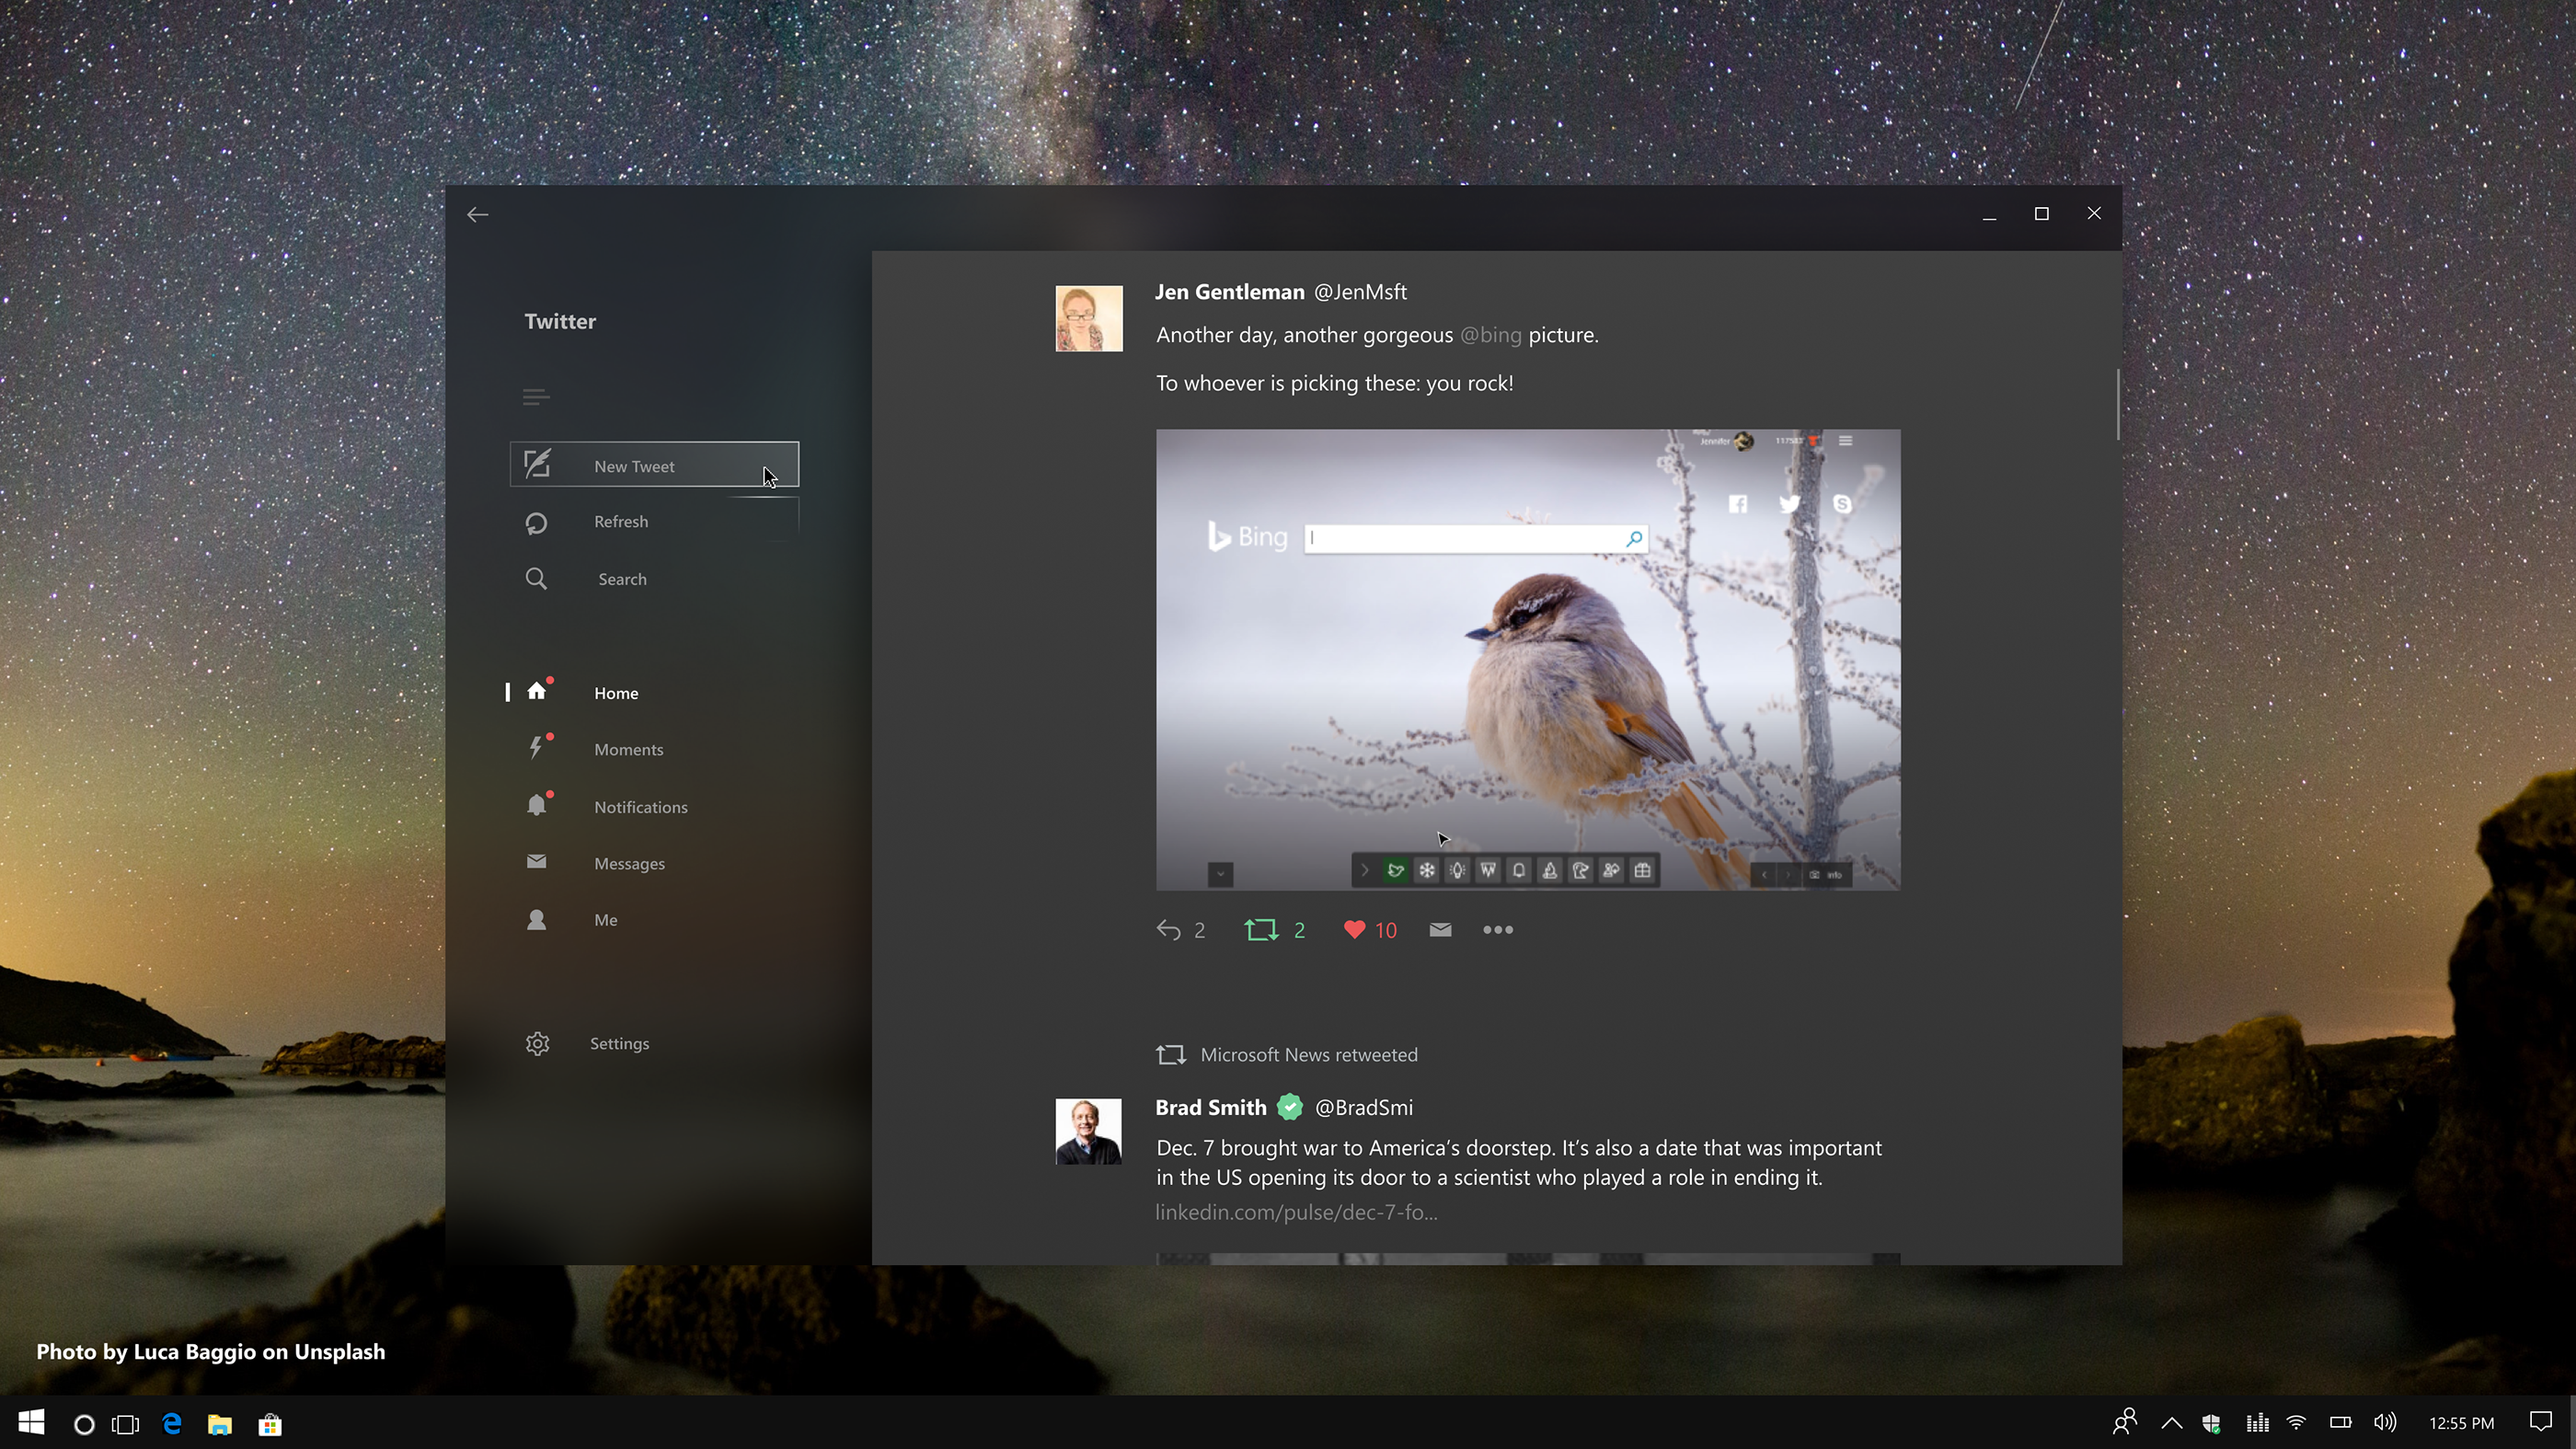 Windows 10 Fluent Design Twitter App Concept on Behance